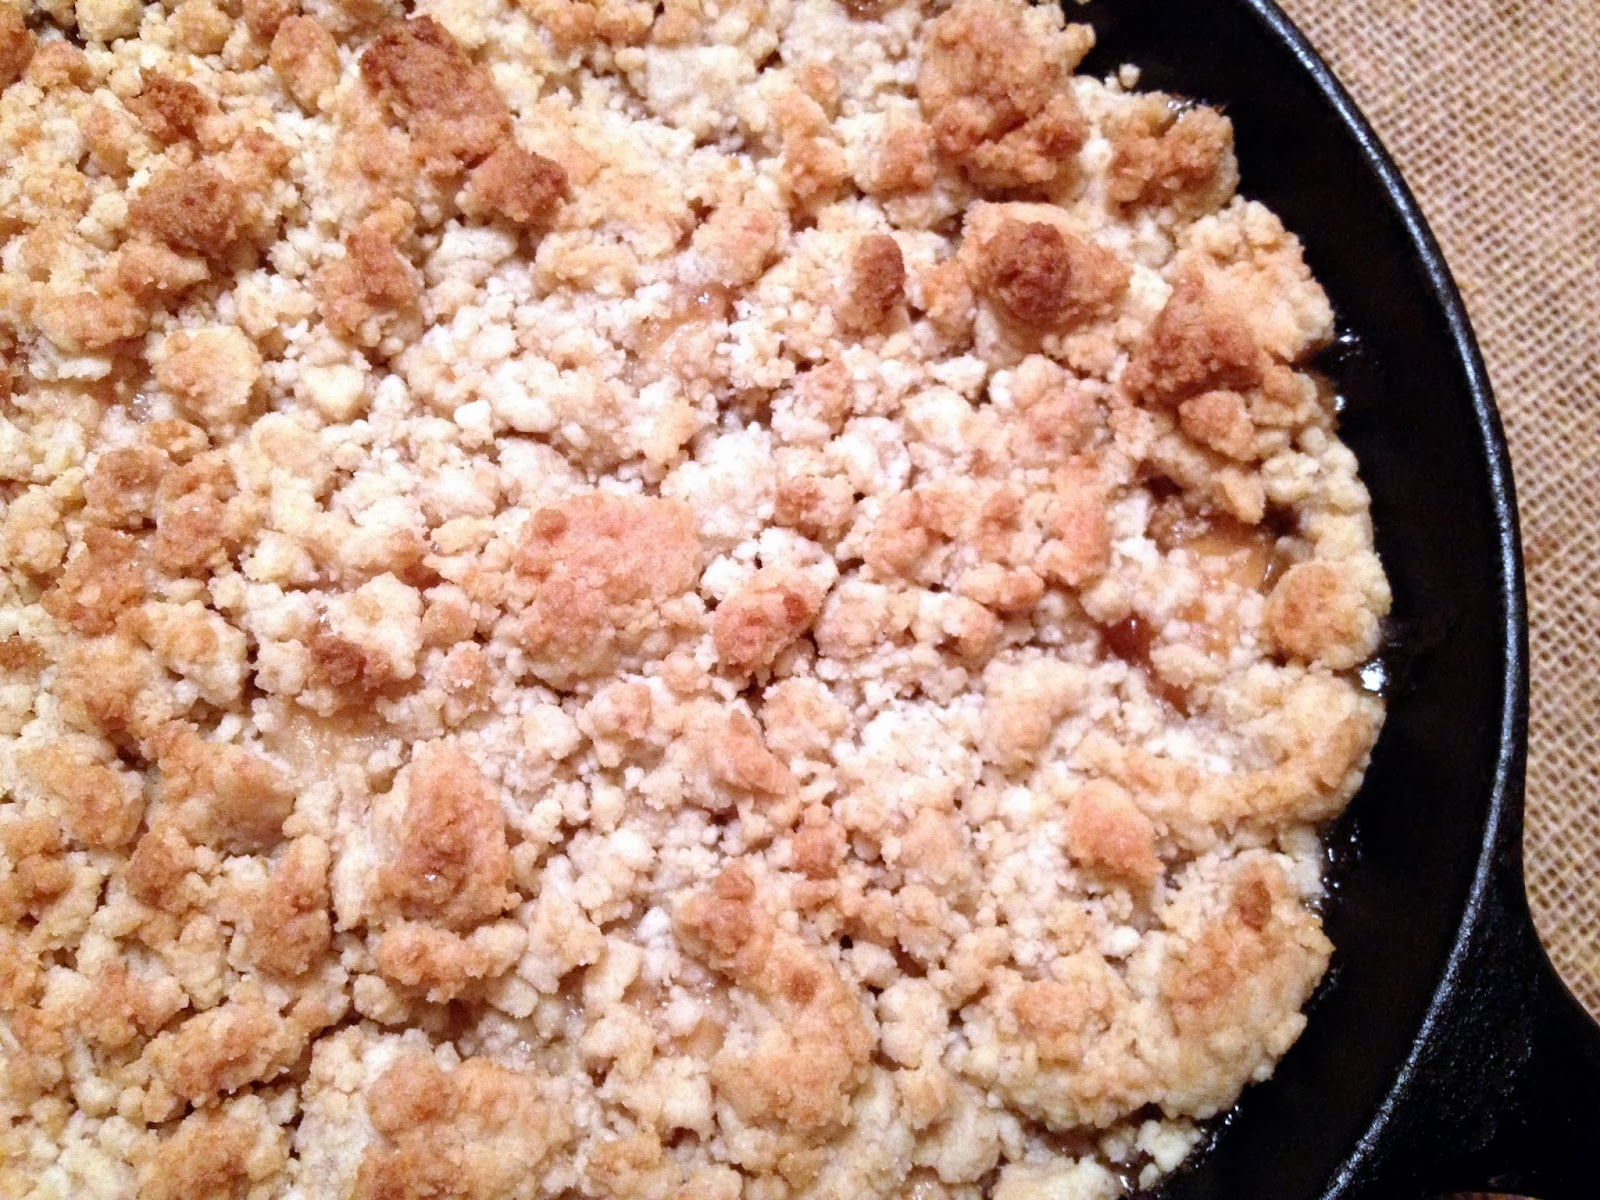 How to make apple crisp using canned pie filling